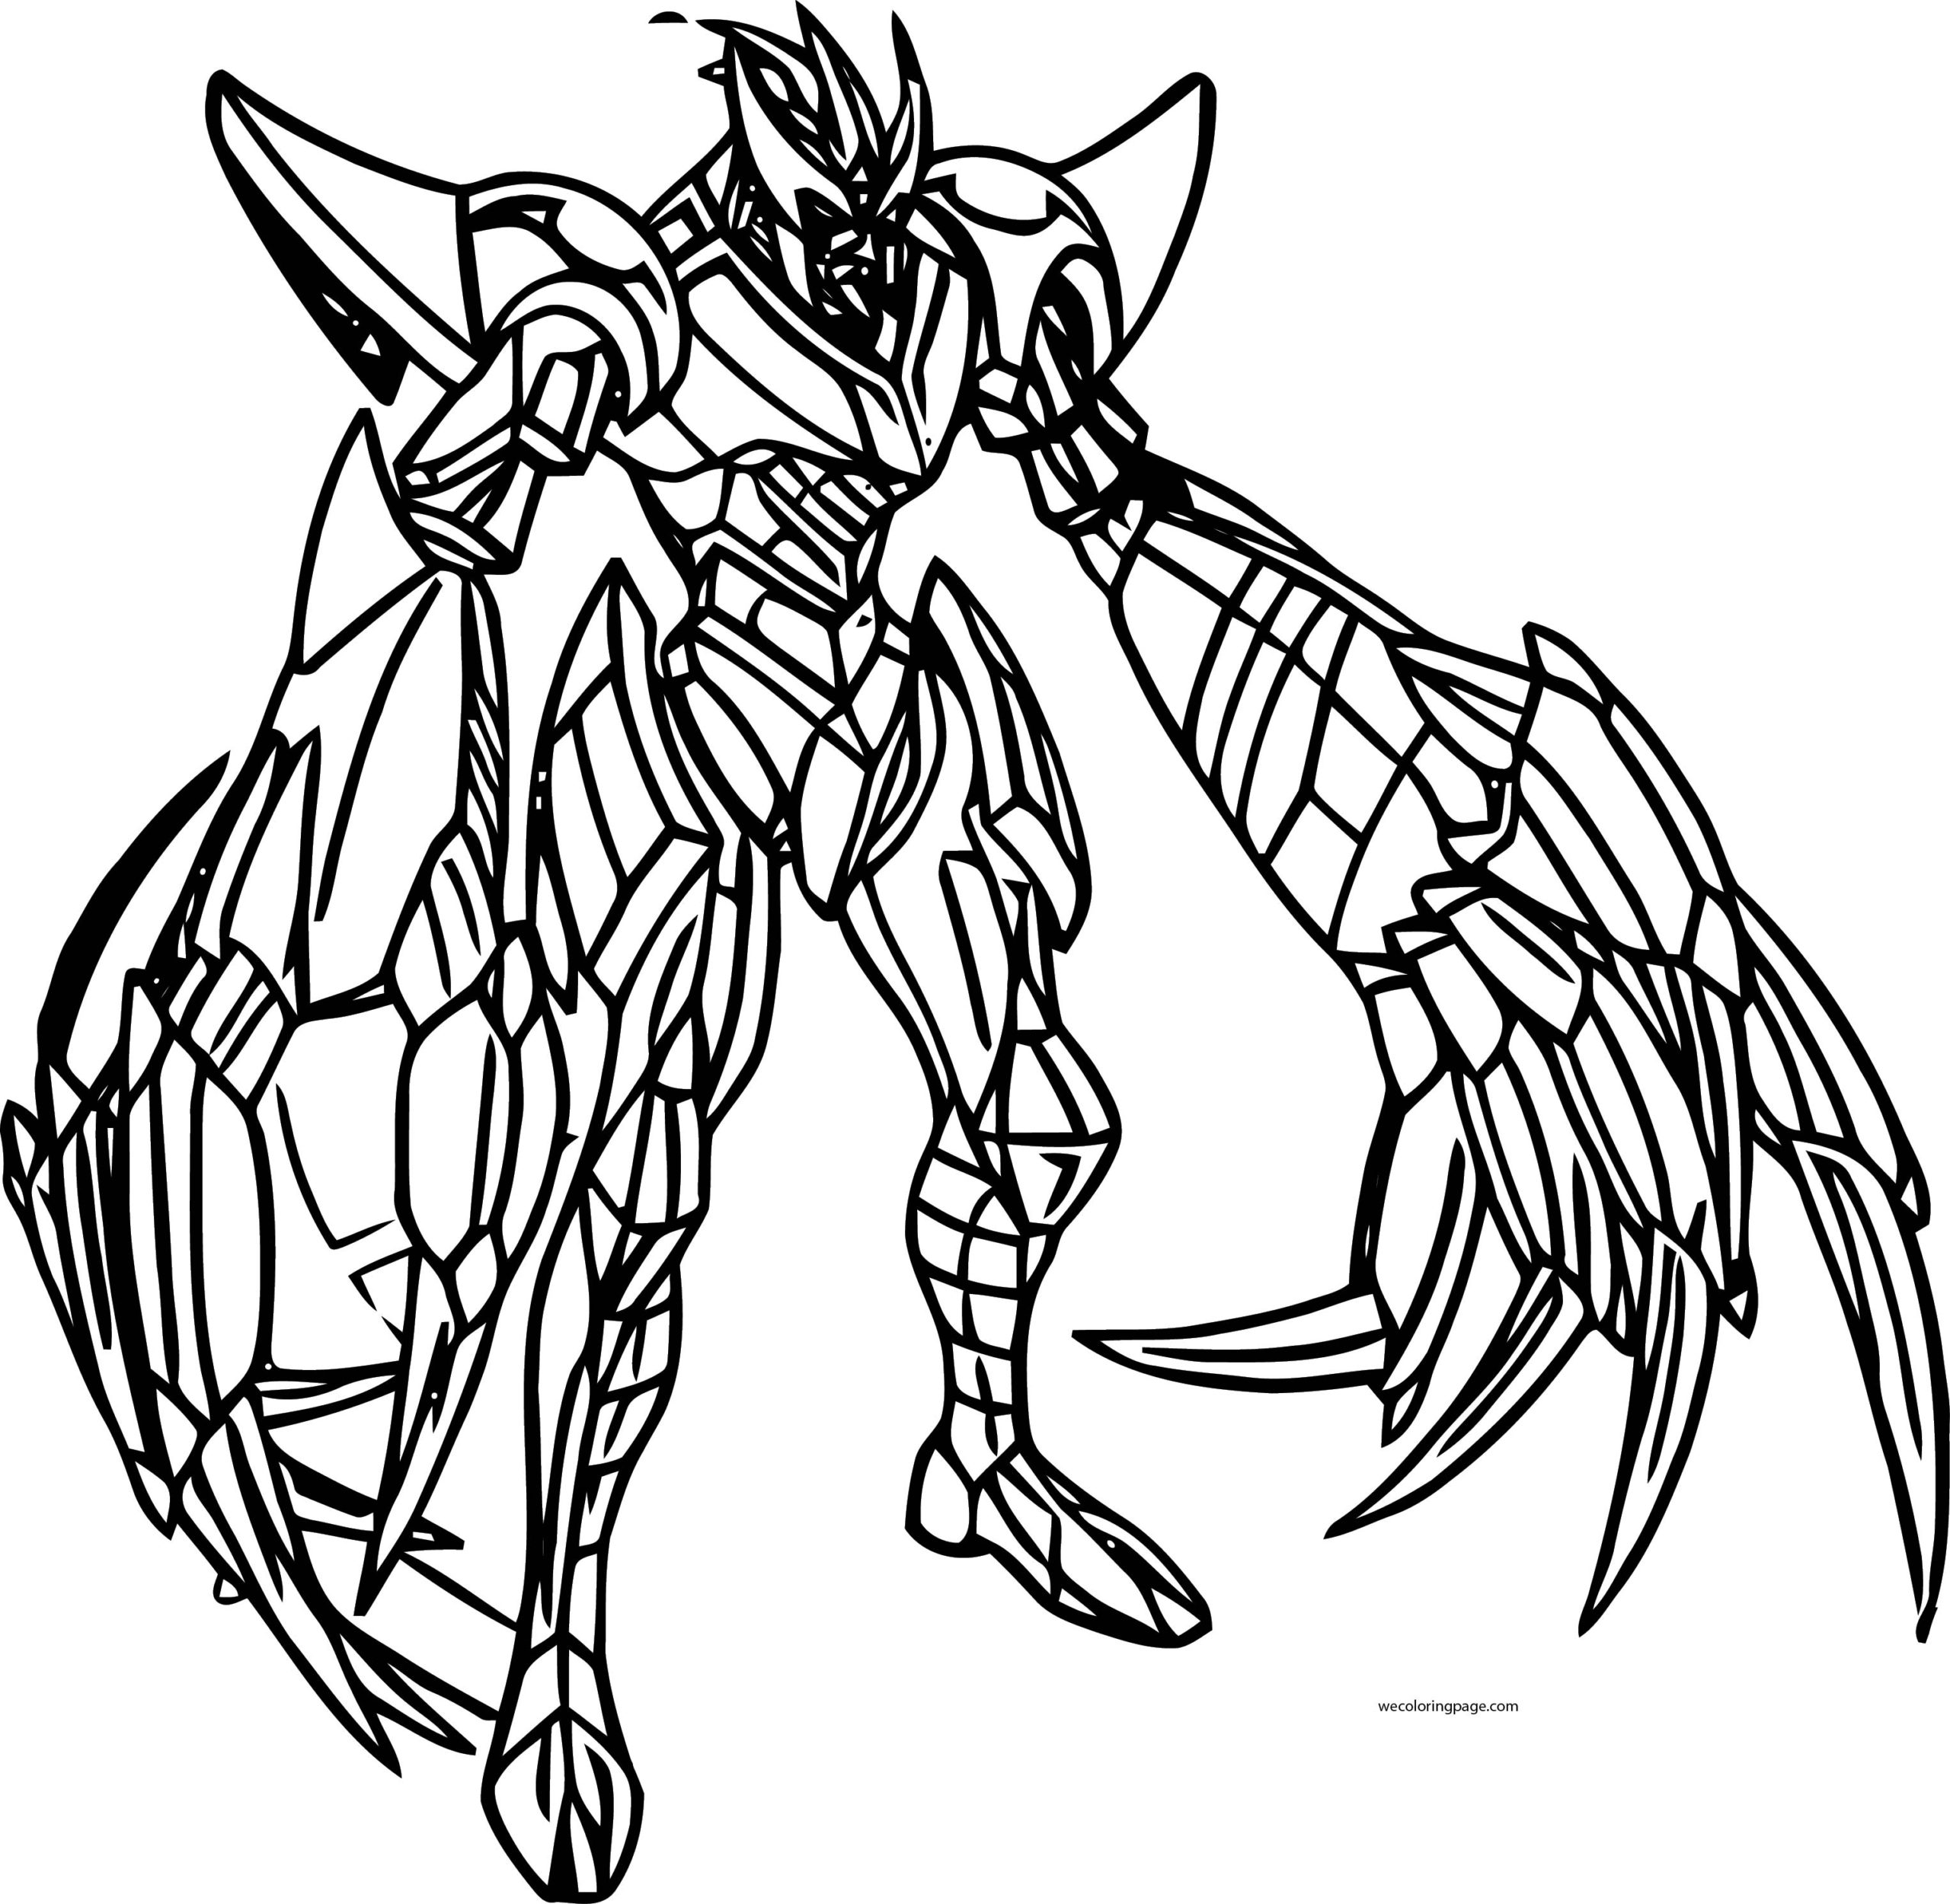 legendary pokemon colouring pages coloring pages 47 extraordinary legendary pokemon legendary colouring pokemon pages